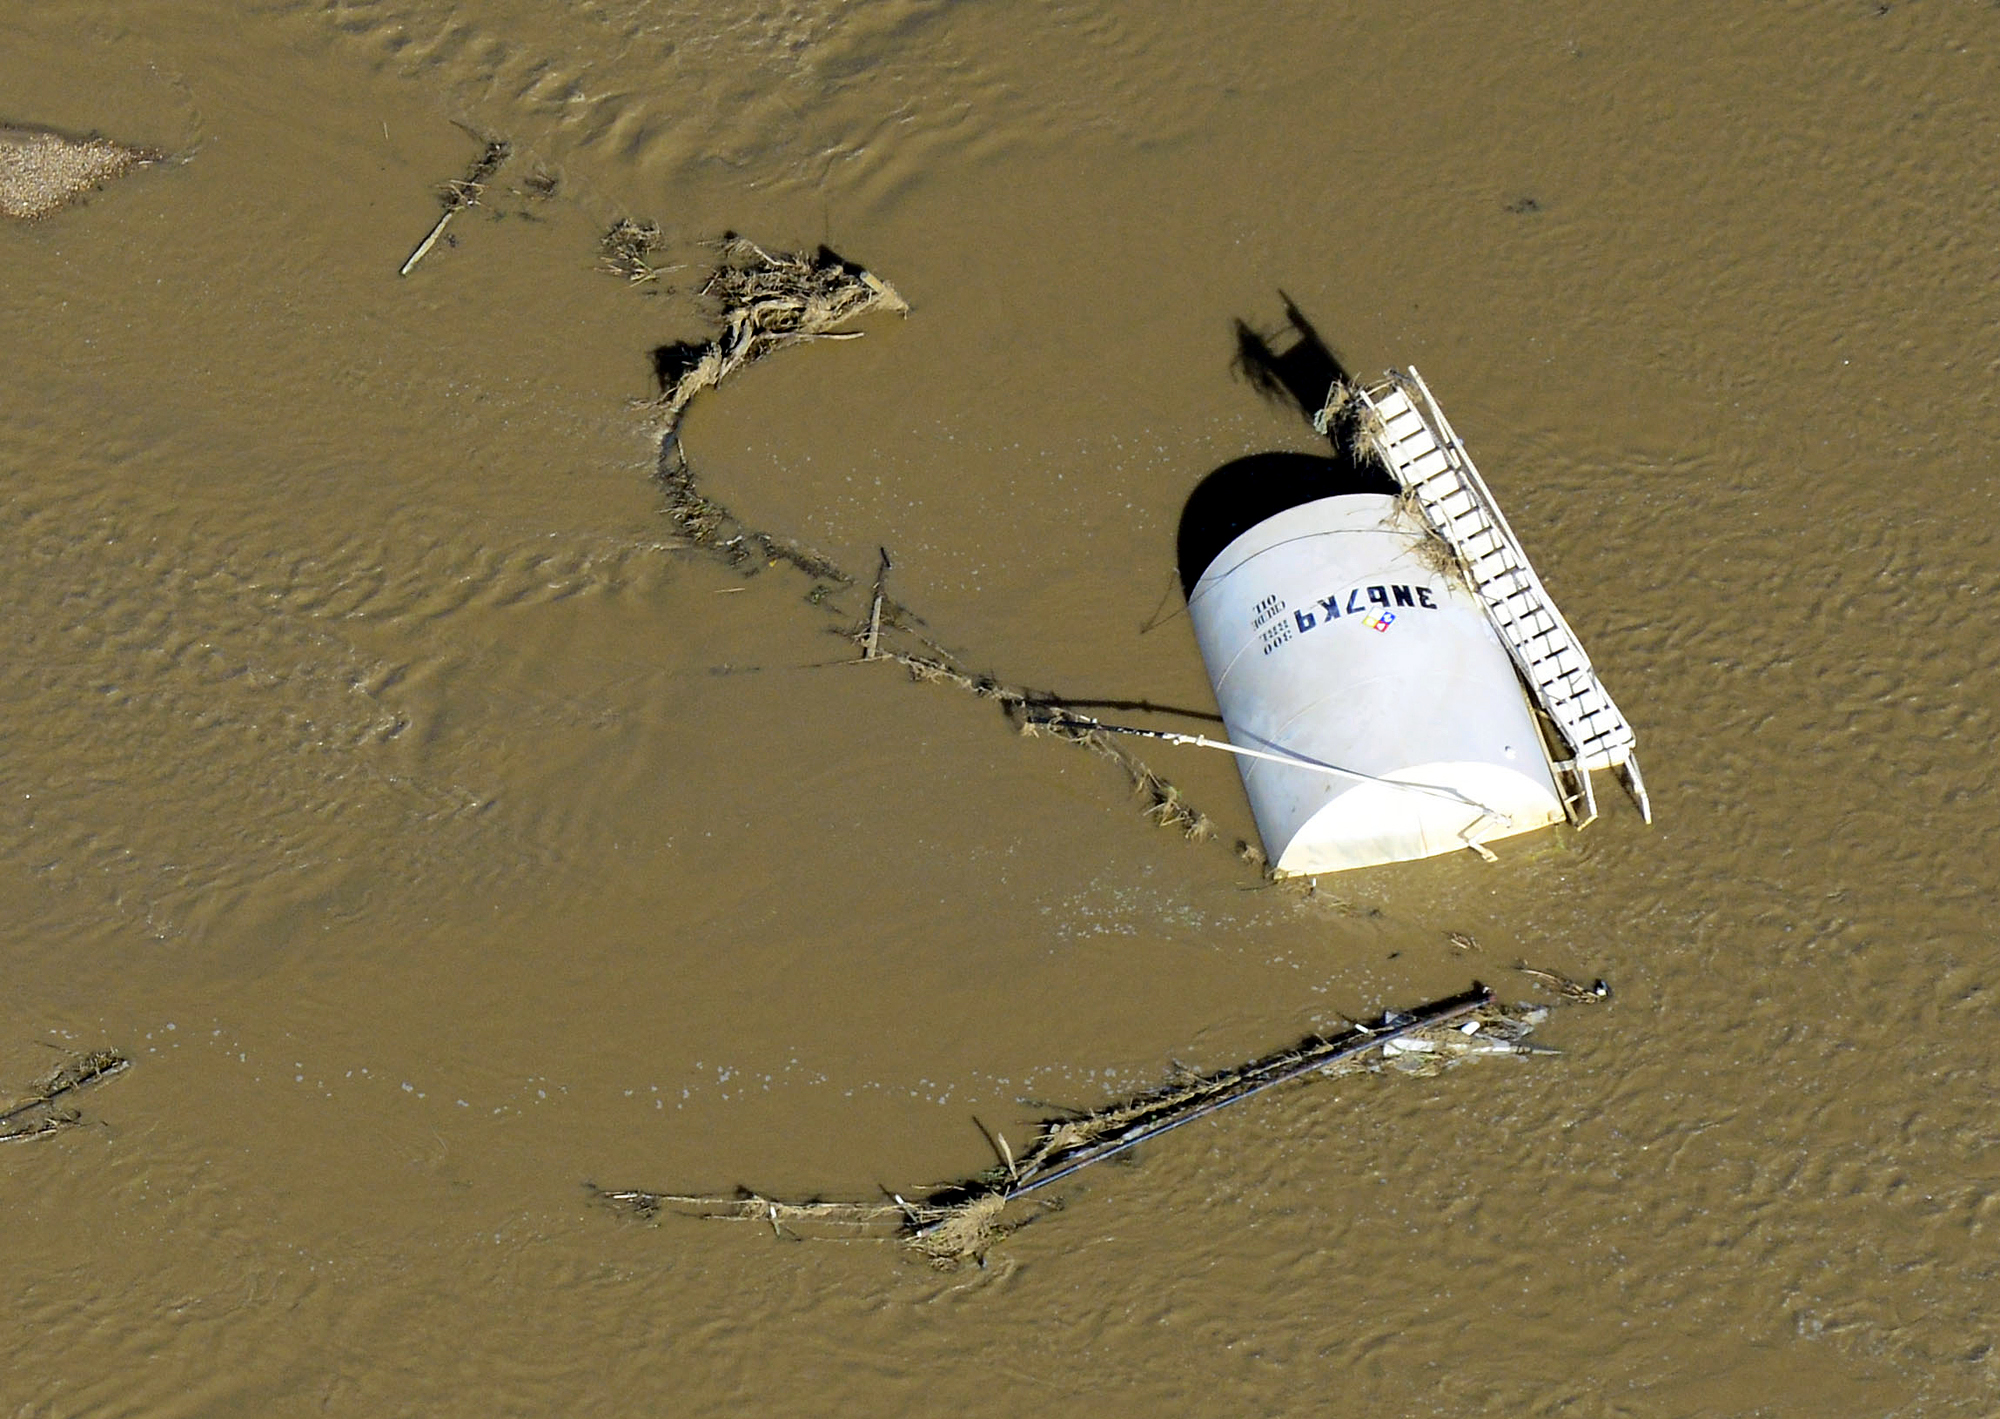 Photo: Crude oil spill in flood (AP Photo)